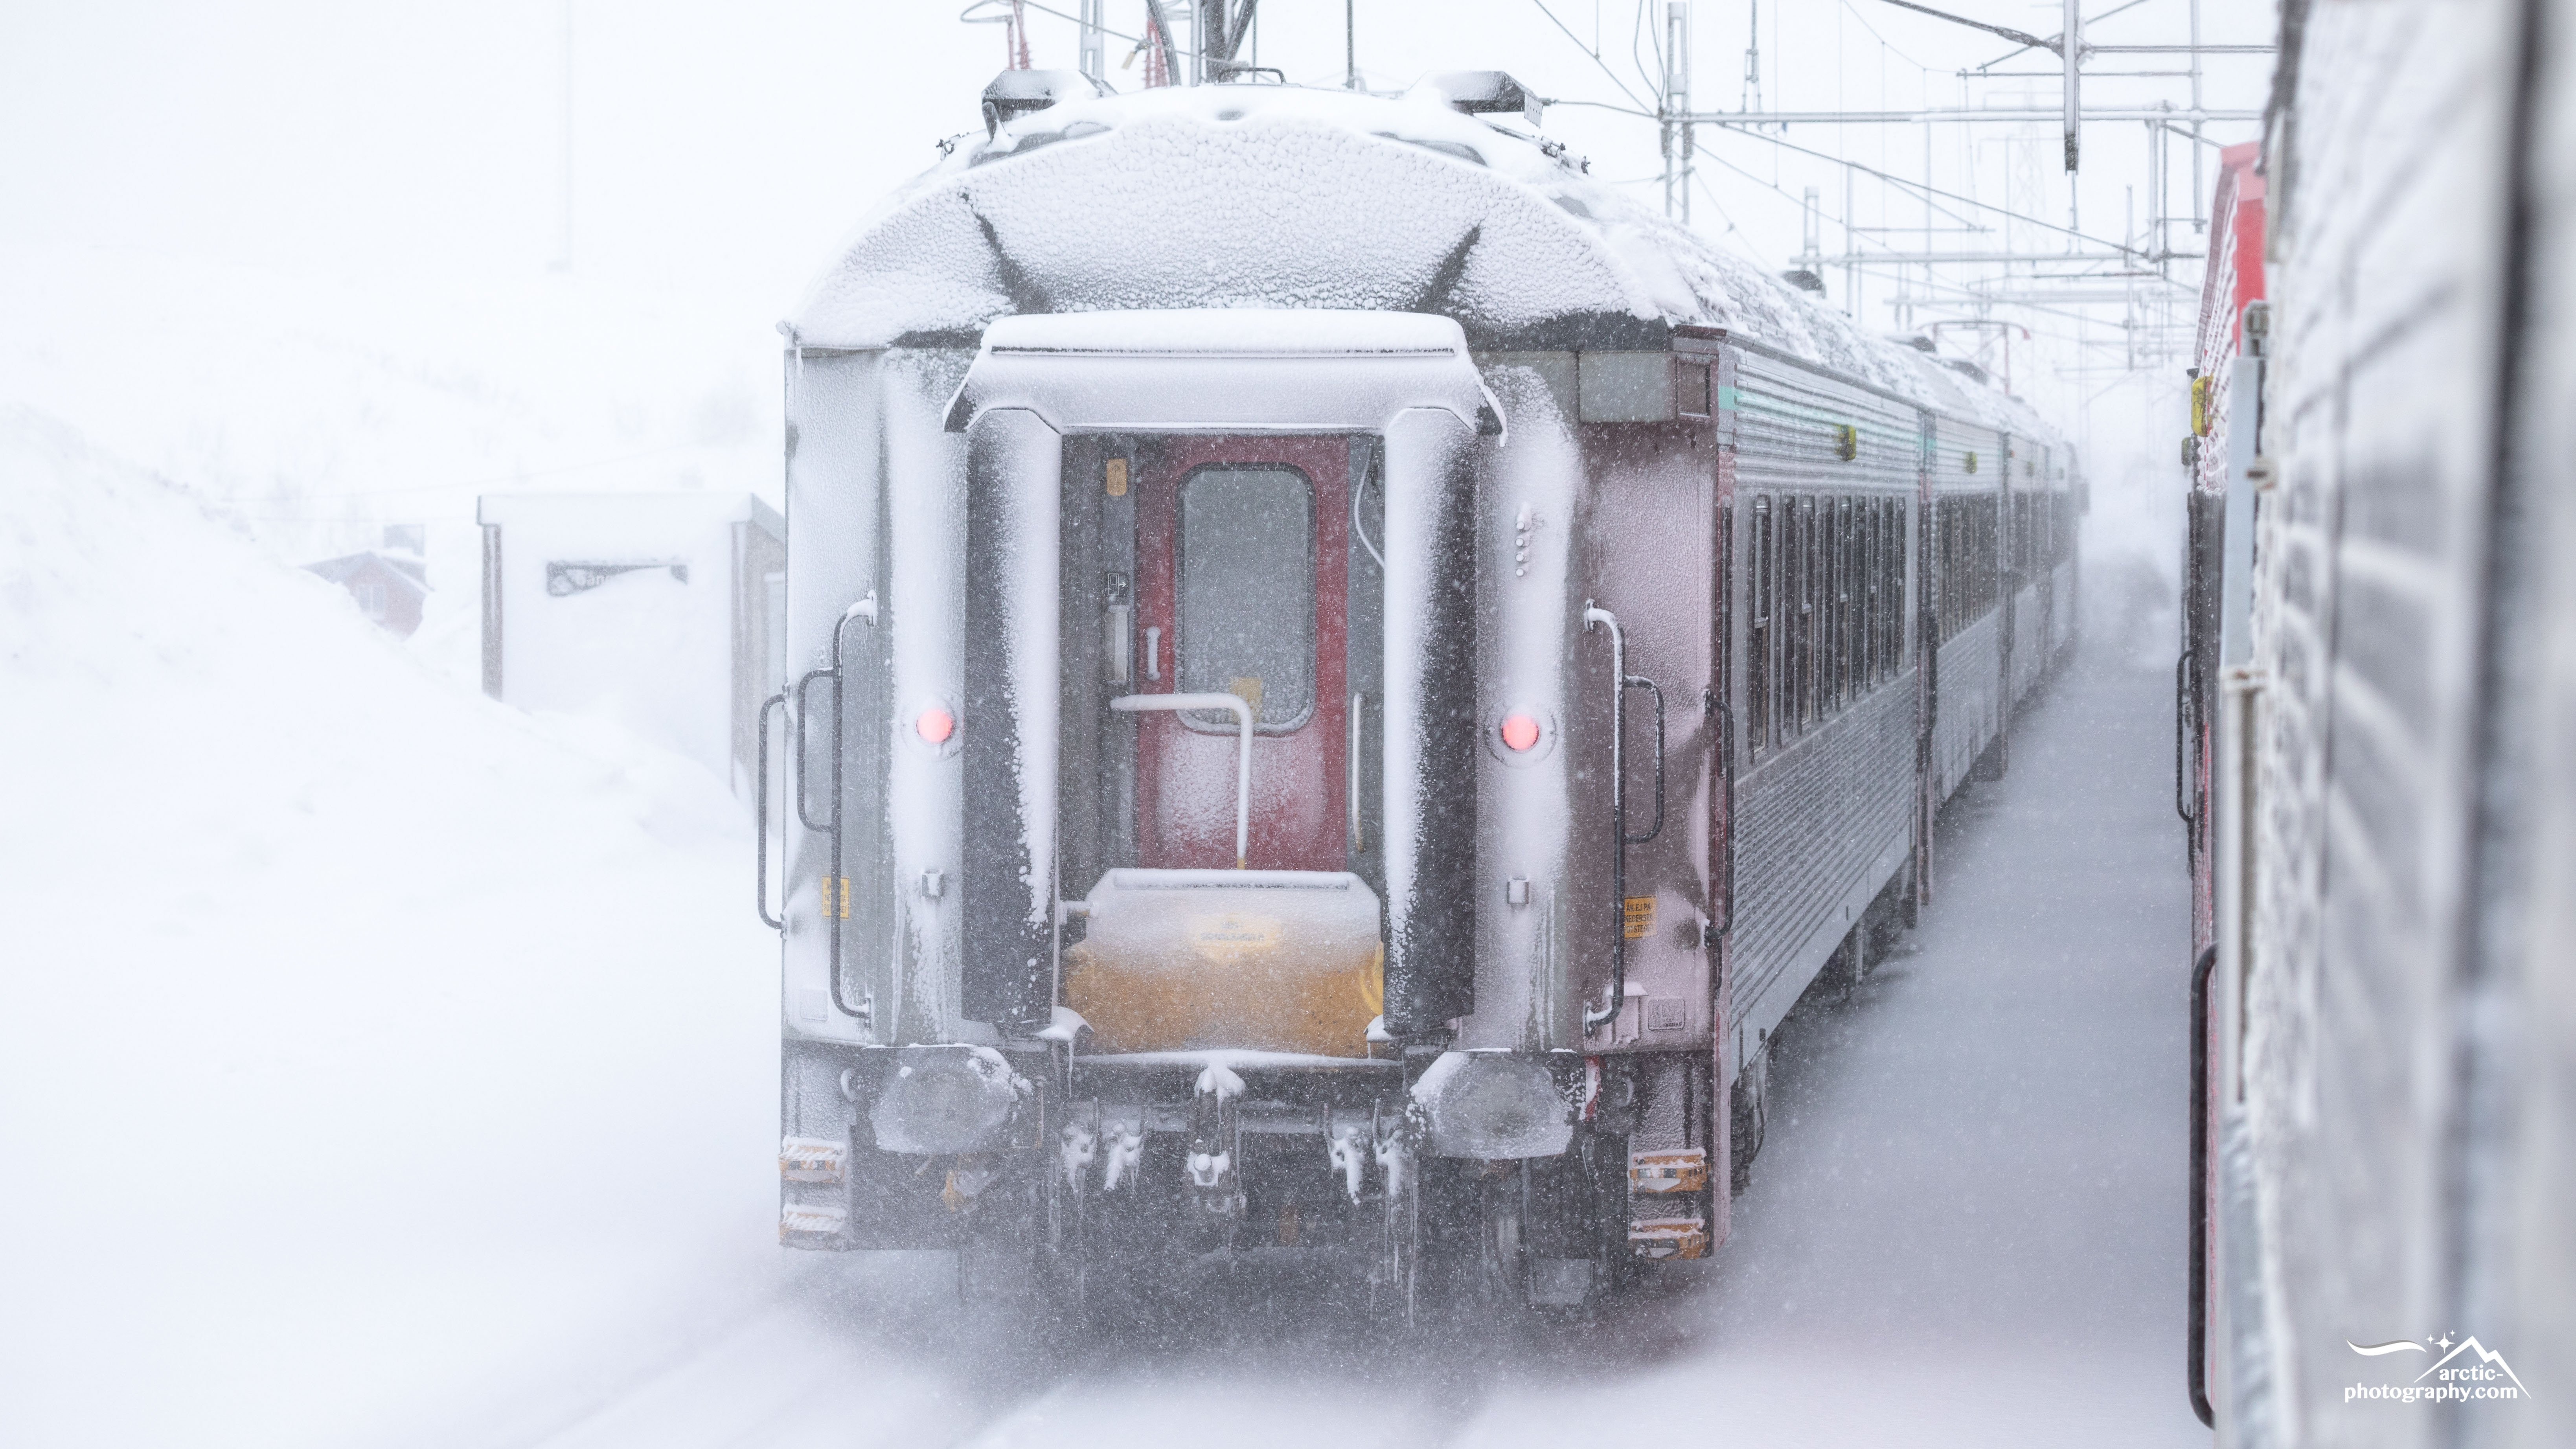 Arctic Circle Train / SJ Intercity covered in snow, Sweden